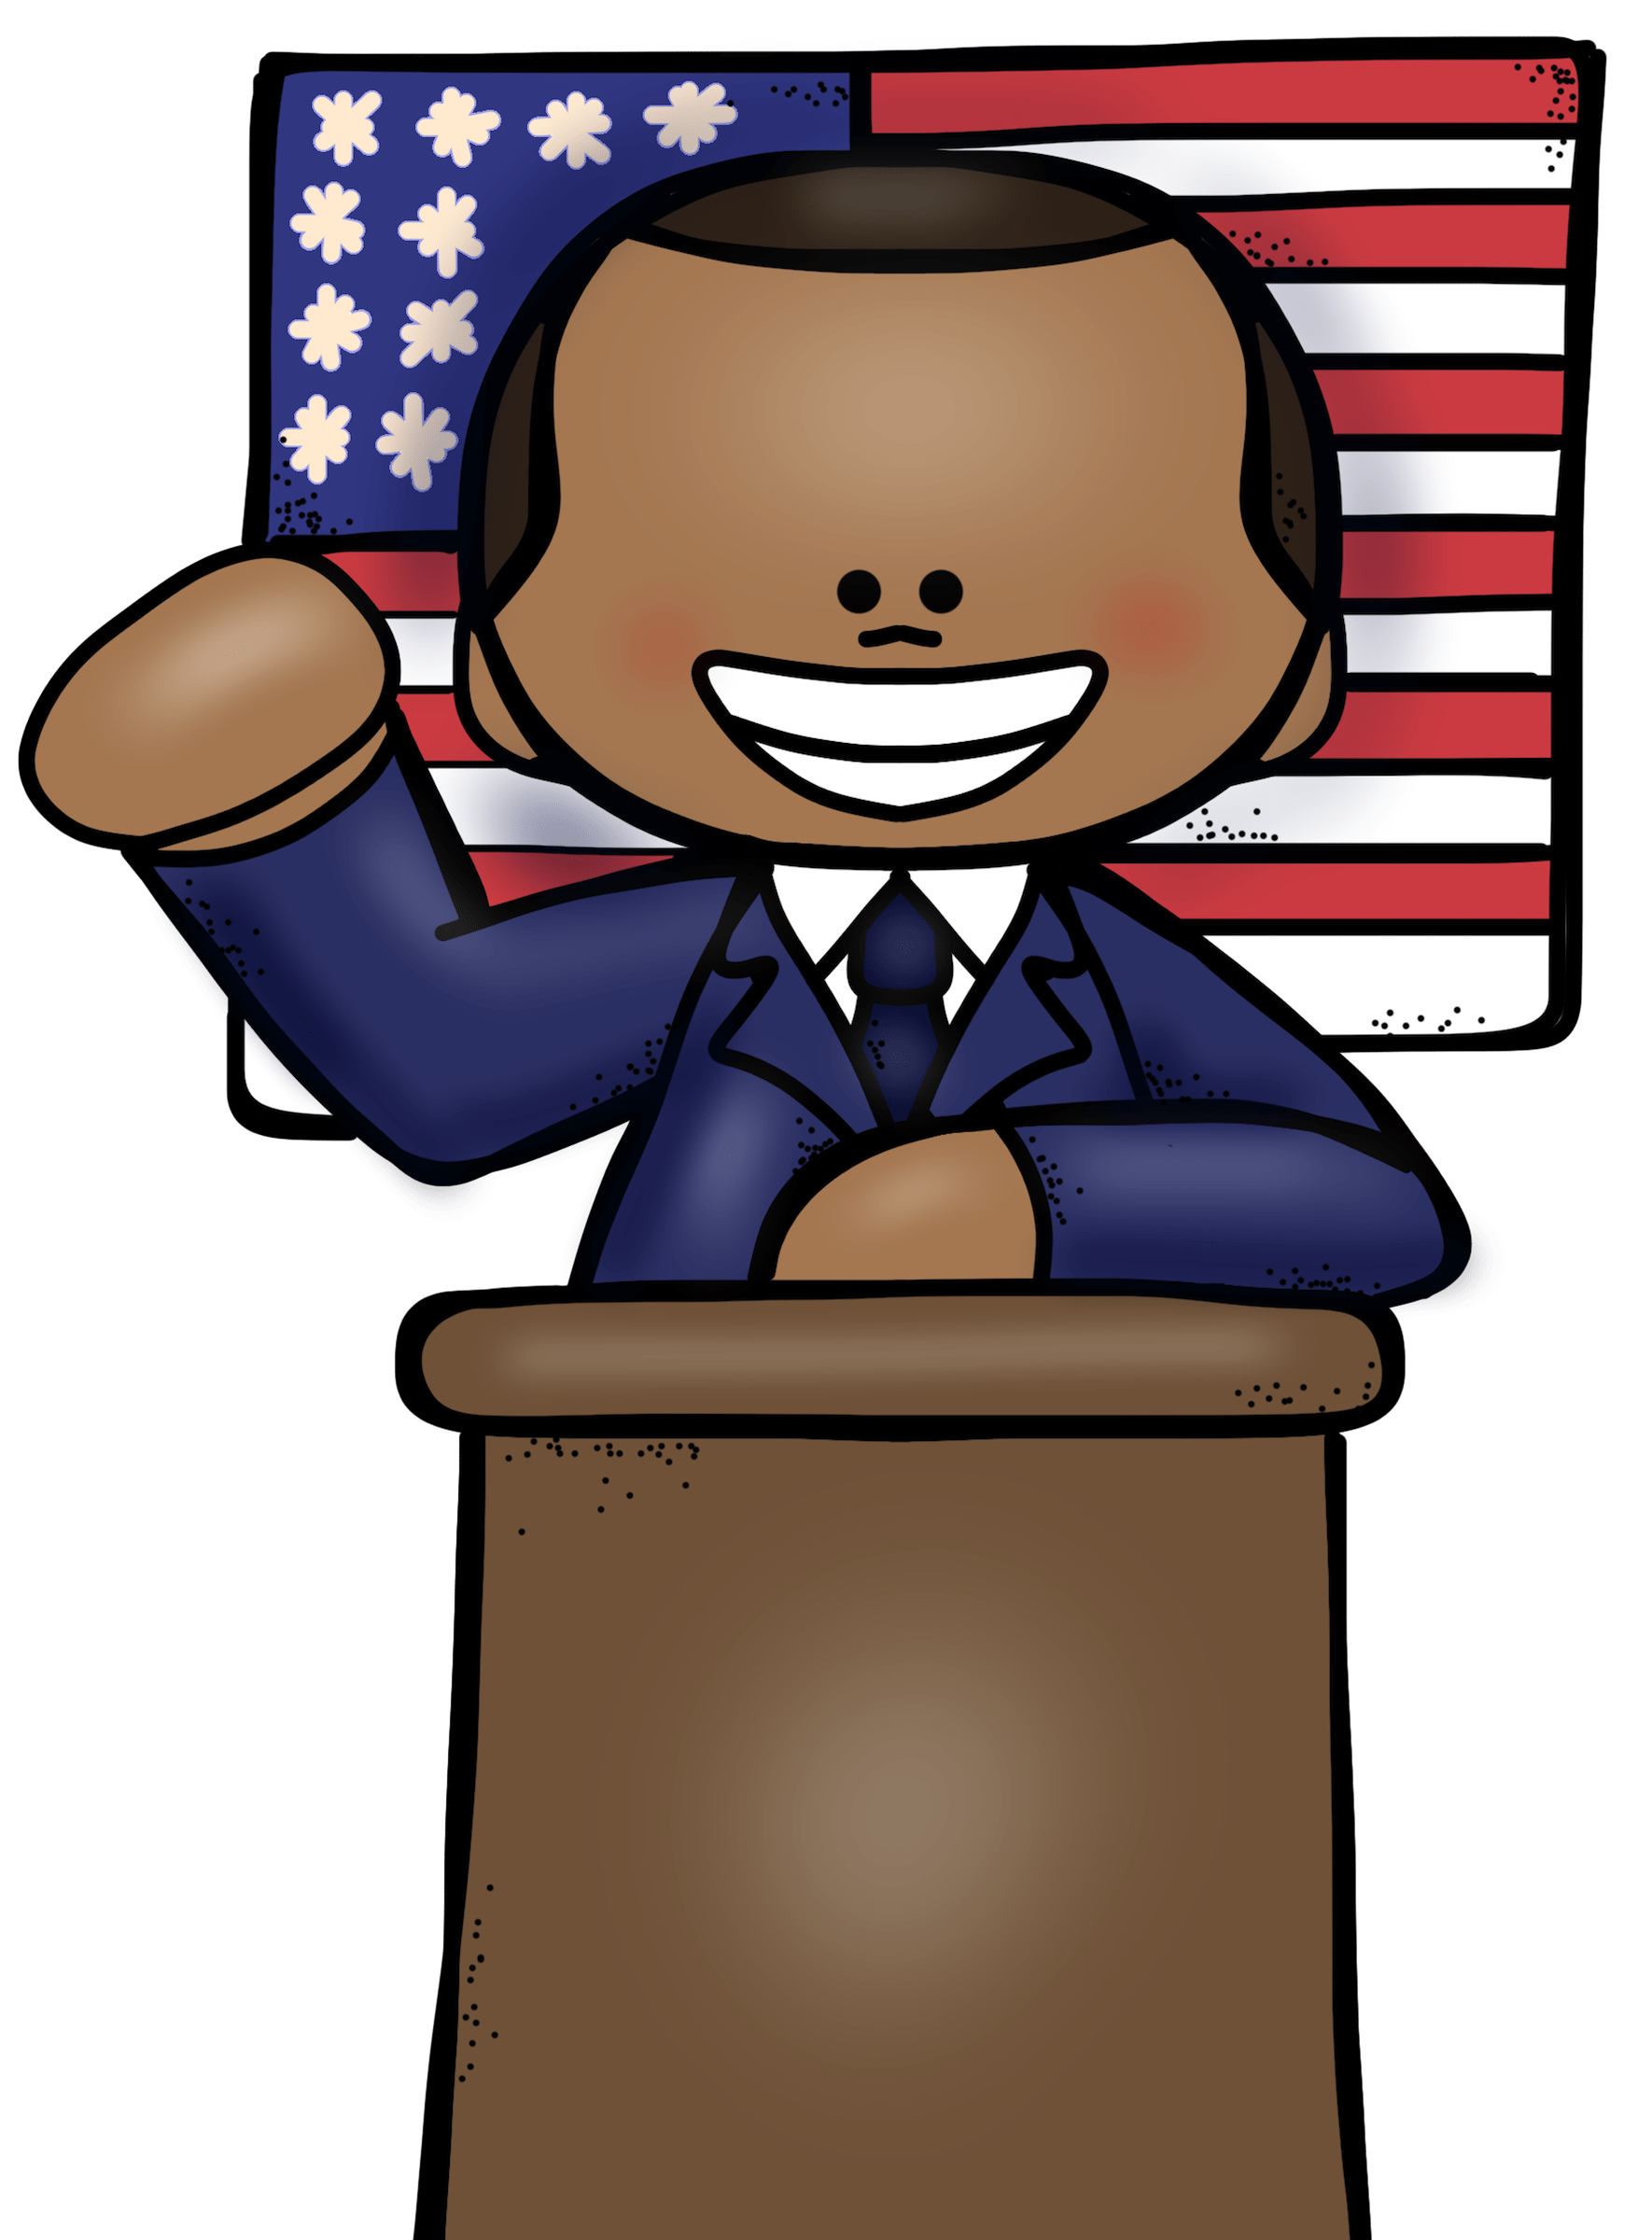 Col welcome to educlips. Girls clipart president